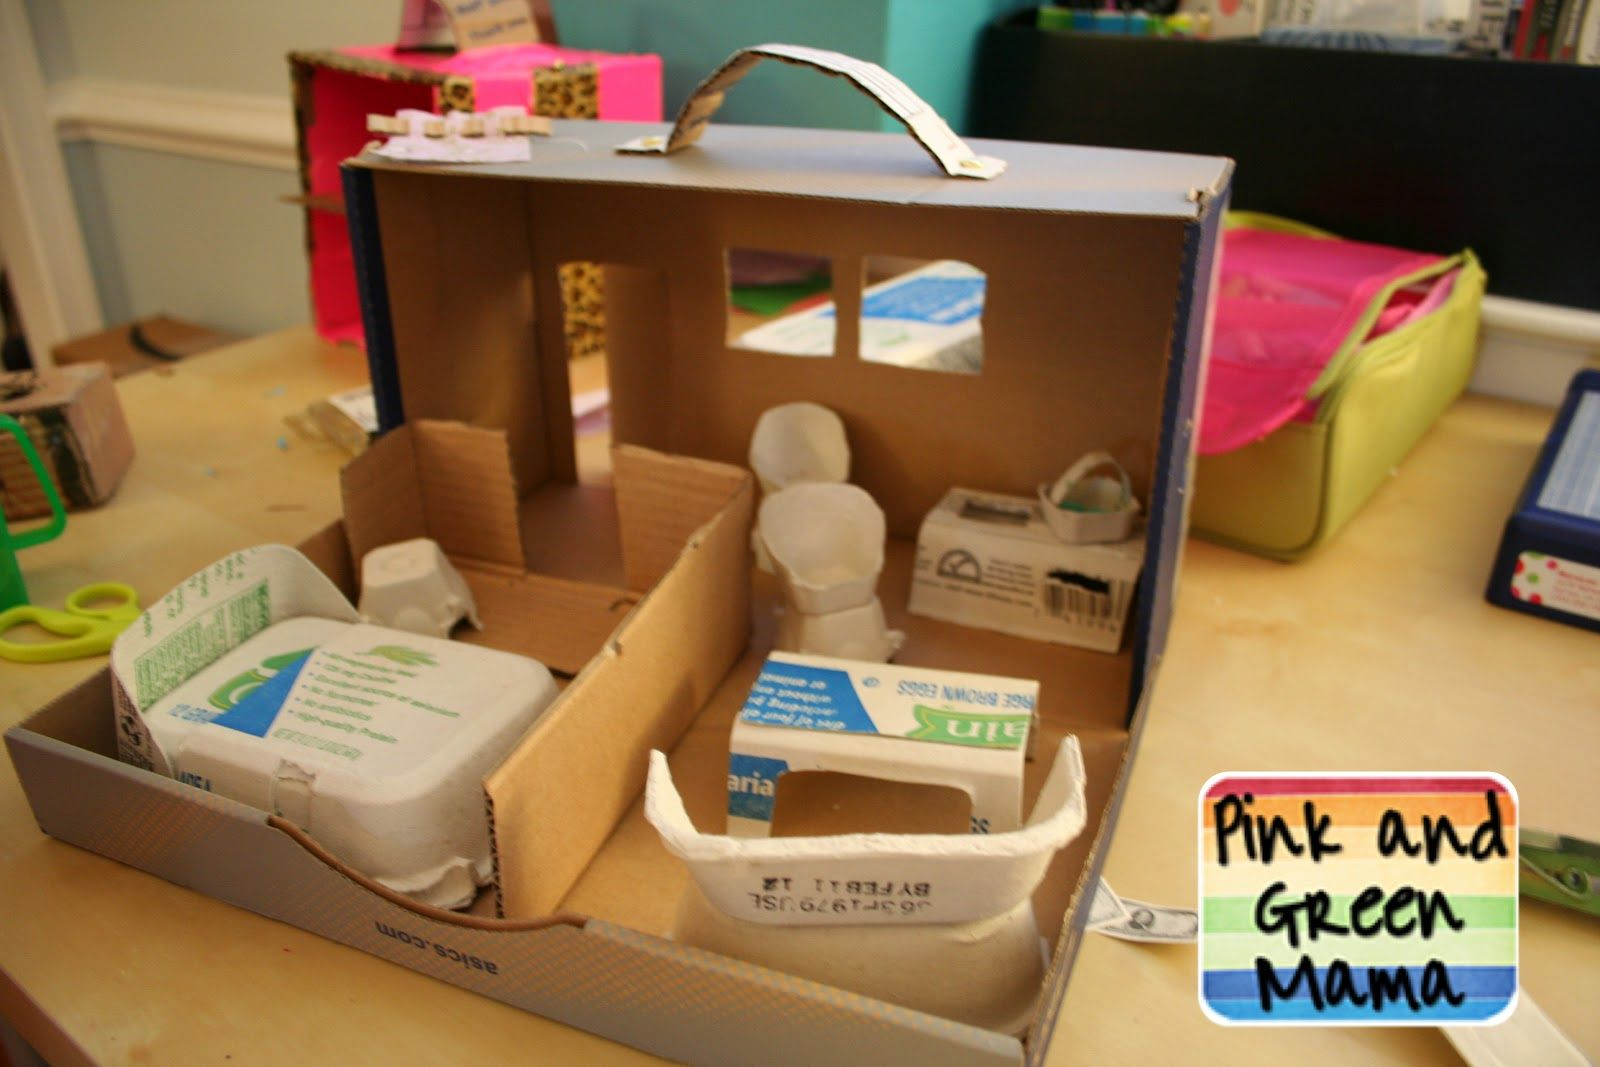 Shoe Box Dollhouse Craft For Kids: Mini Doll House From Small Box And Egg Carton